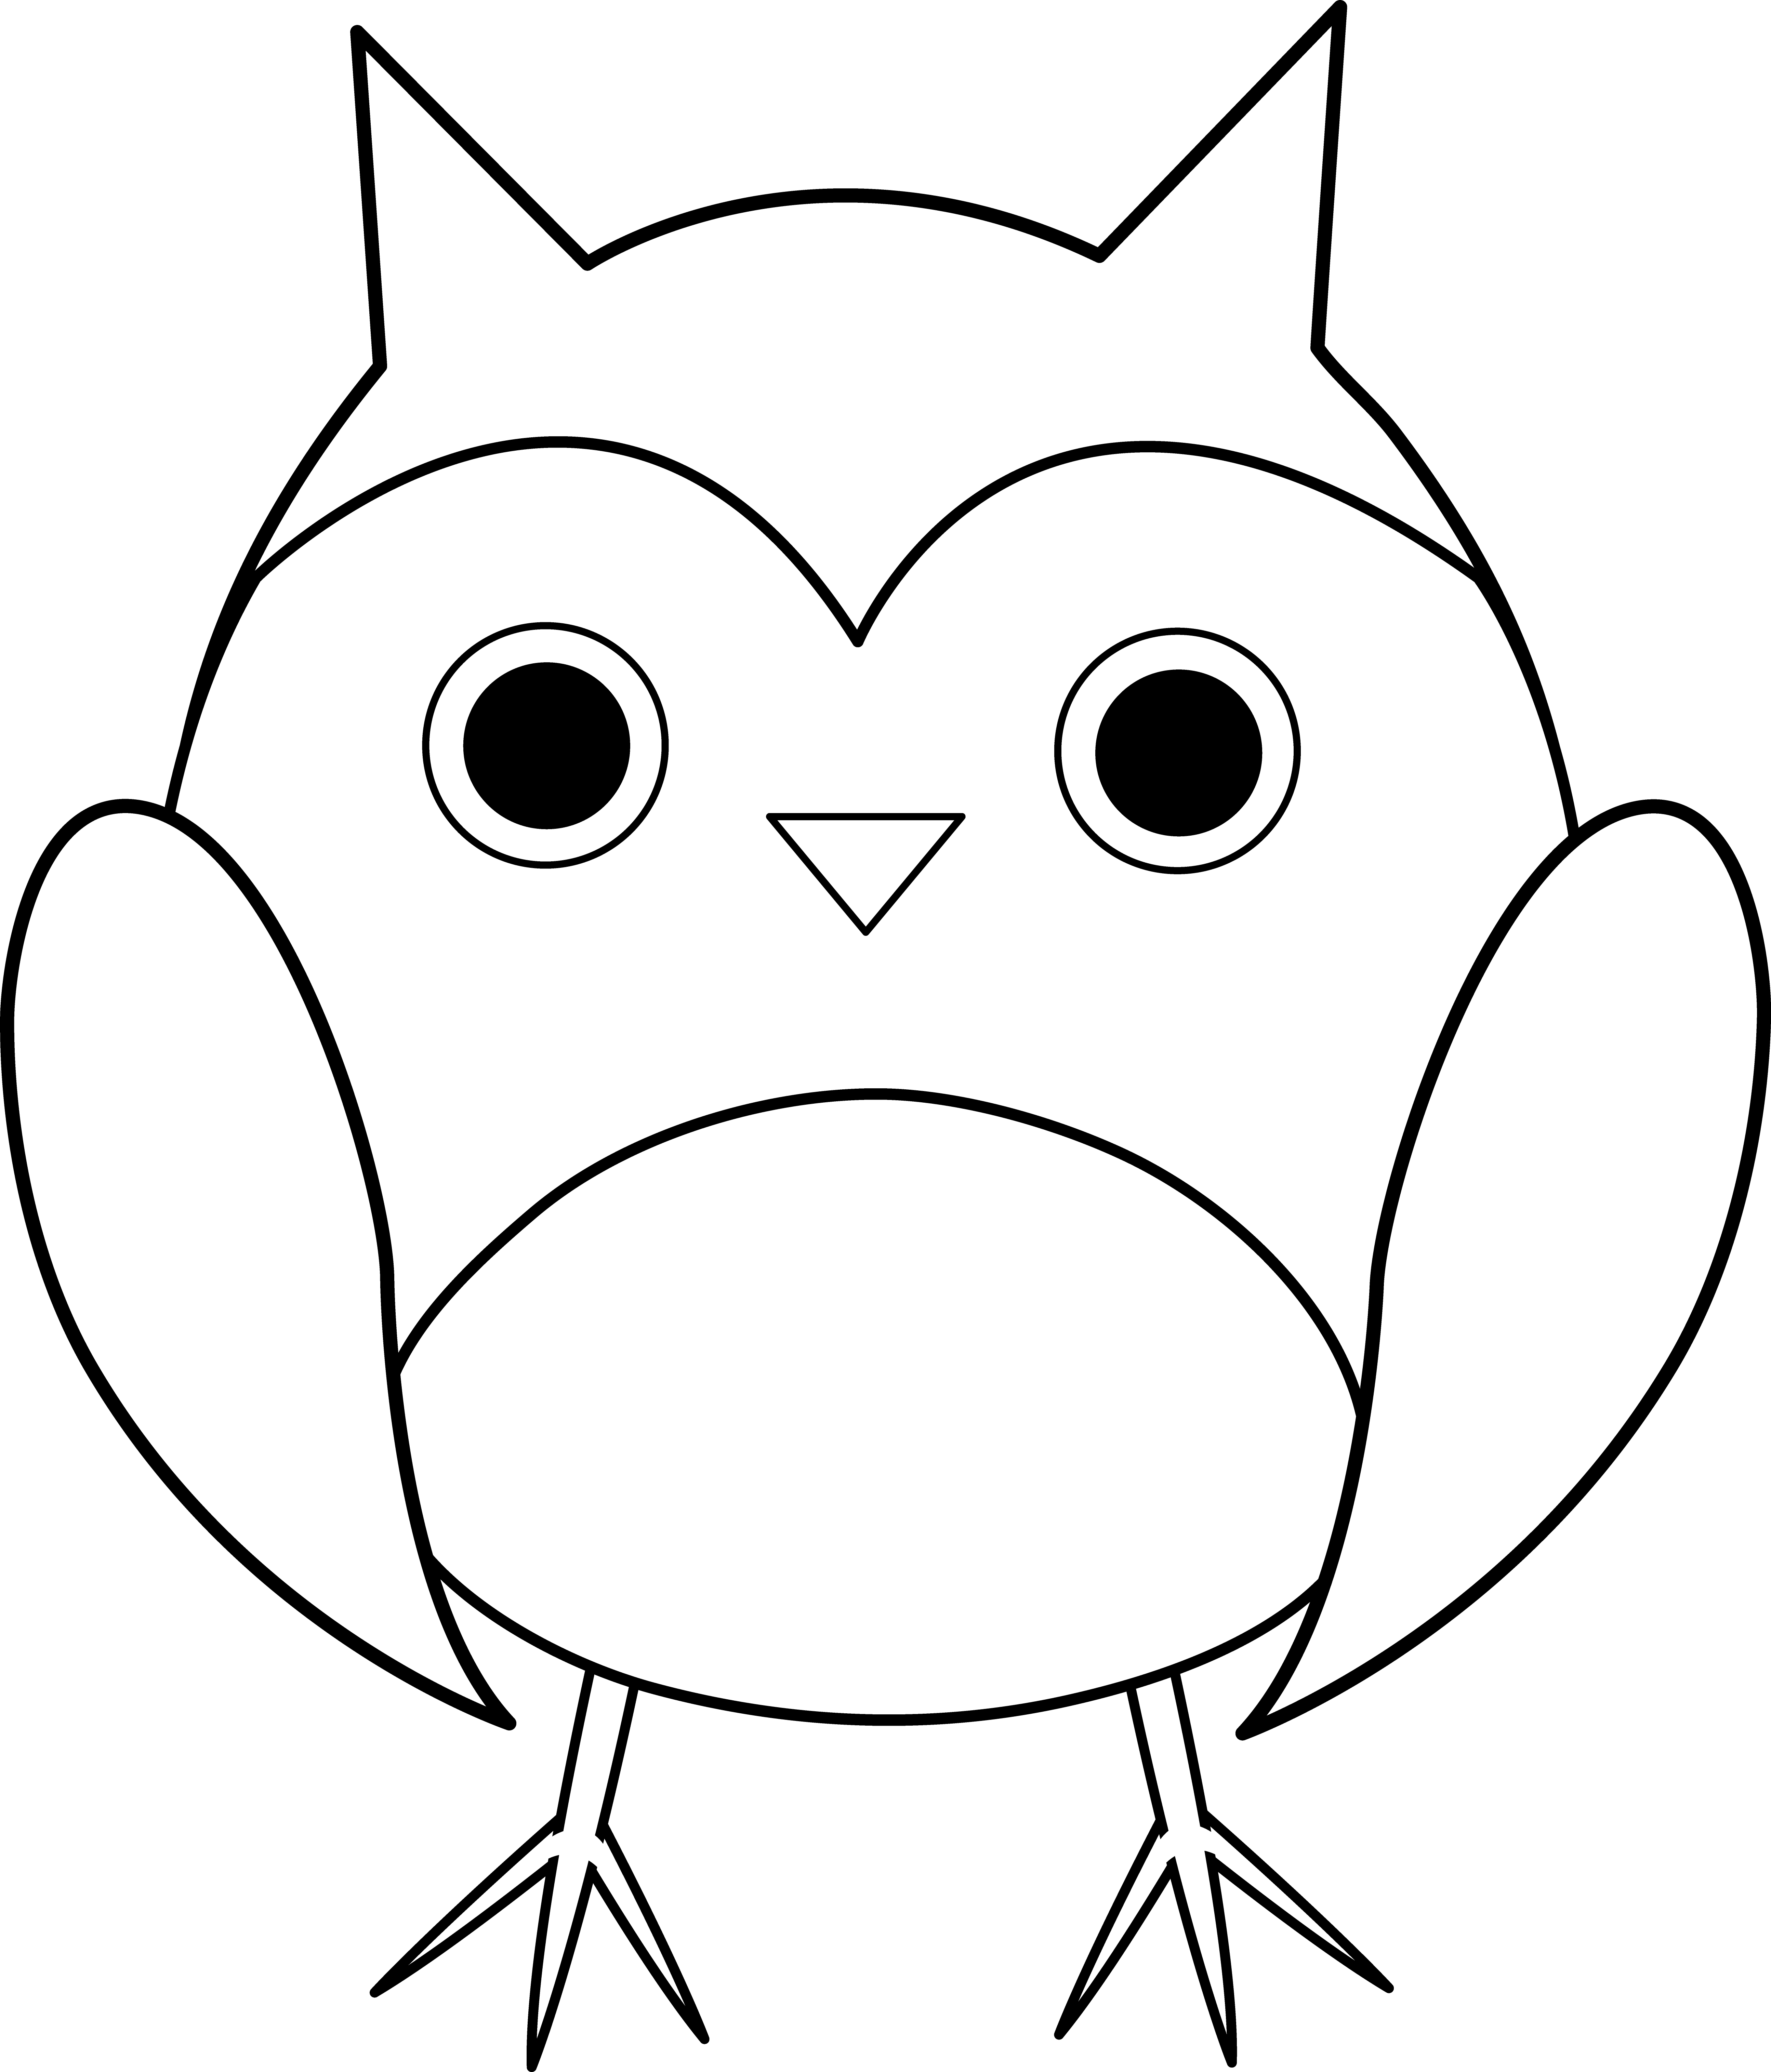 Cute owl clipart black and white clipart images gallery for.